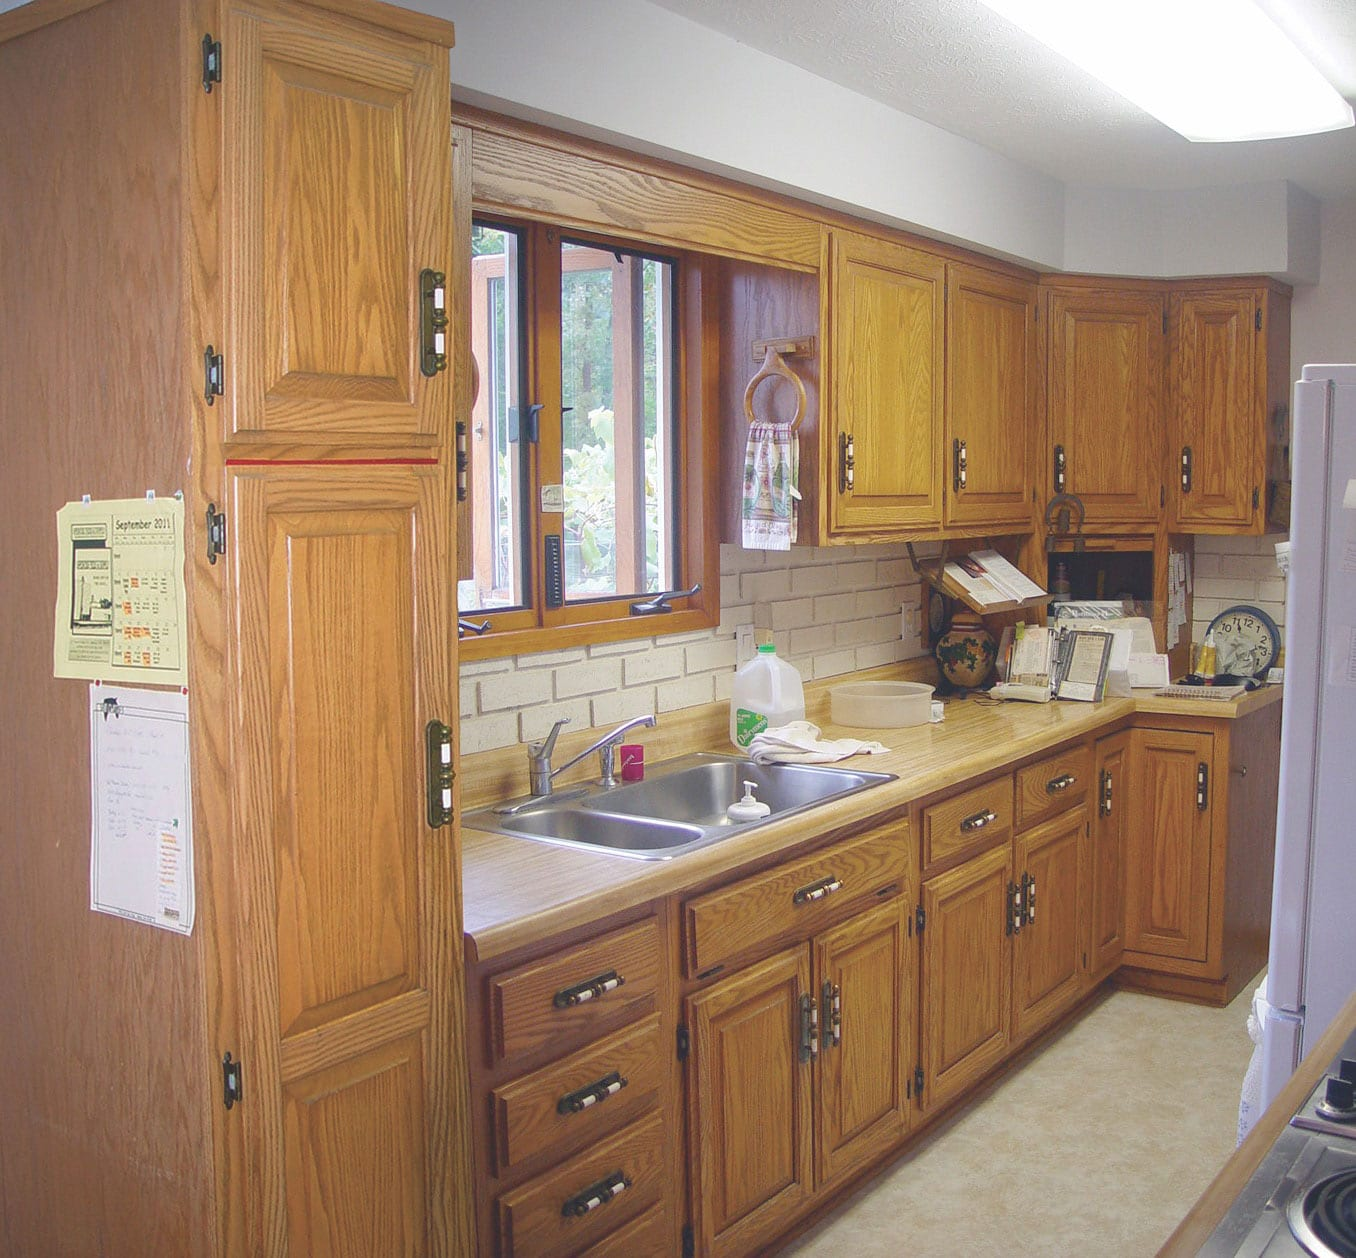 a picture of an old kitchen and brown cabinets made from wood and the cabinets not extend to the ceiling